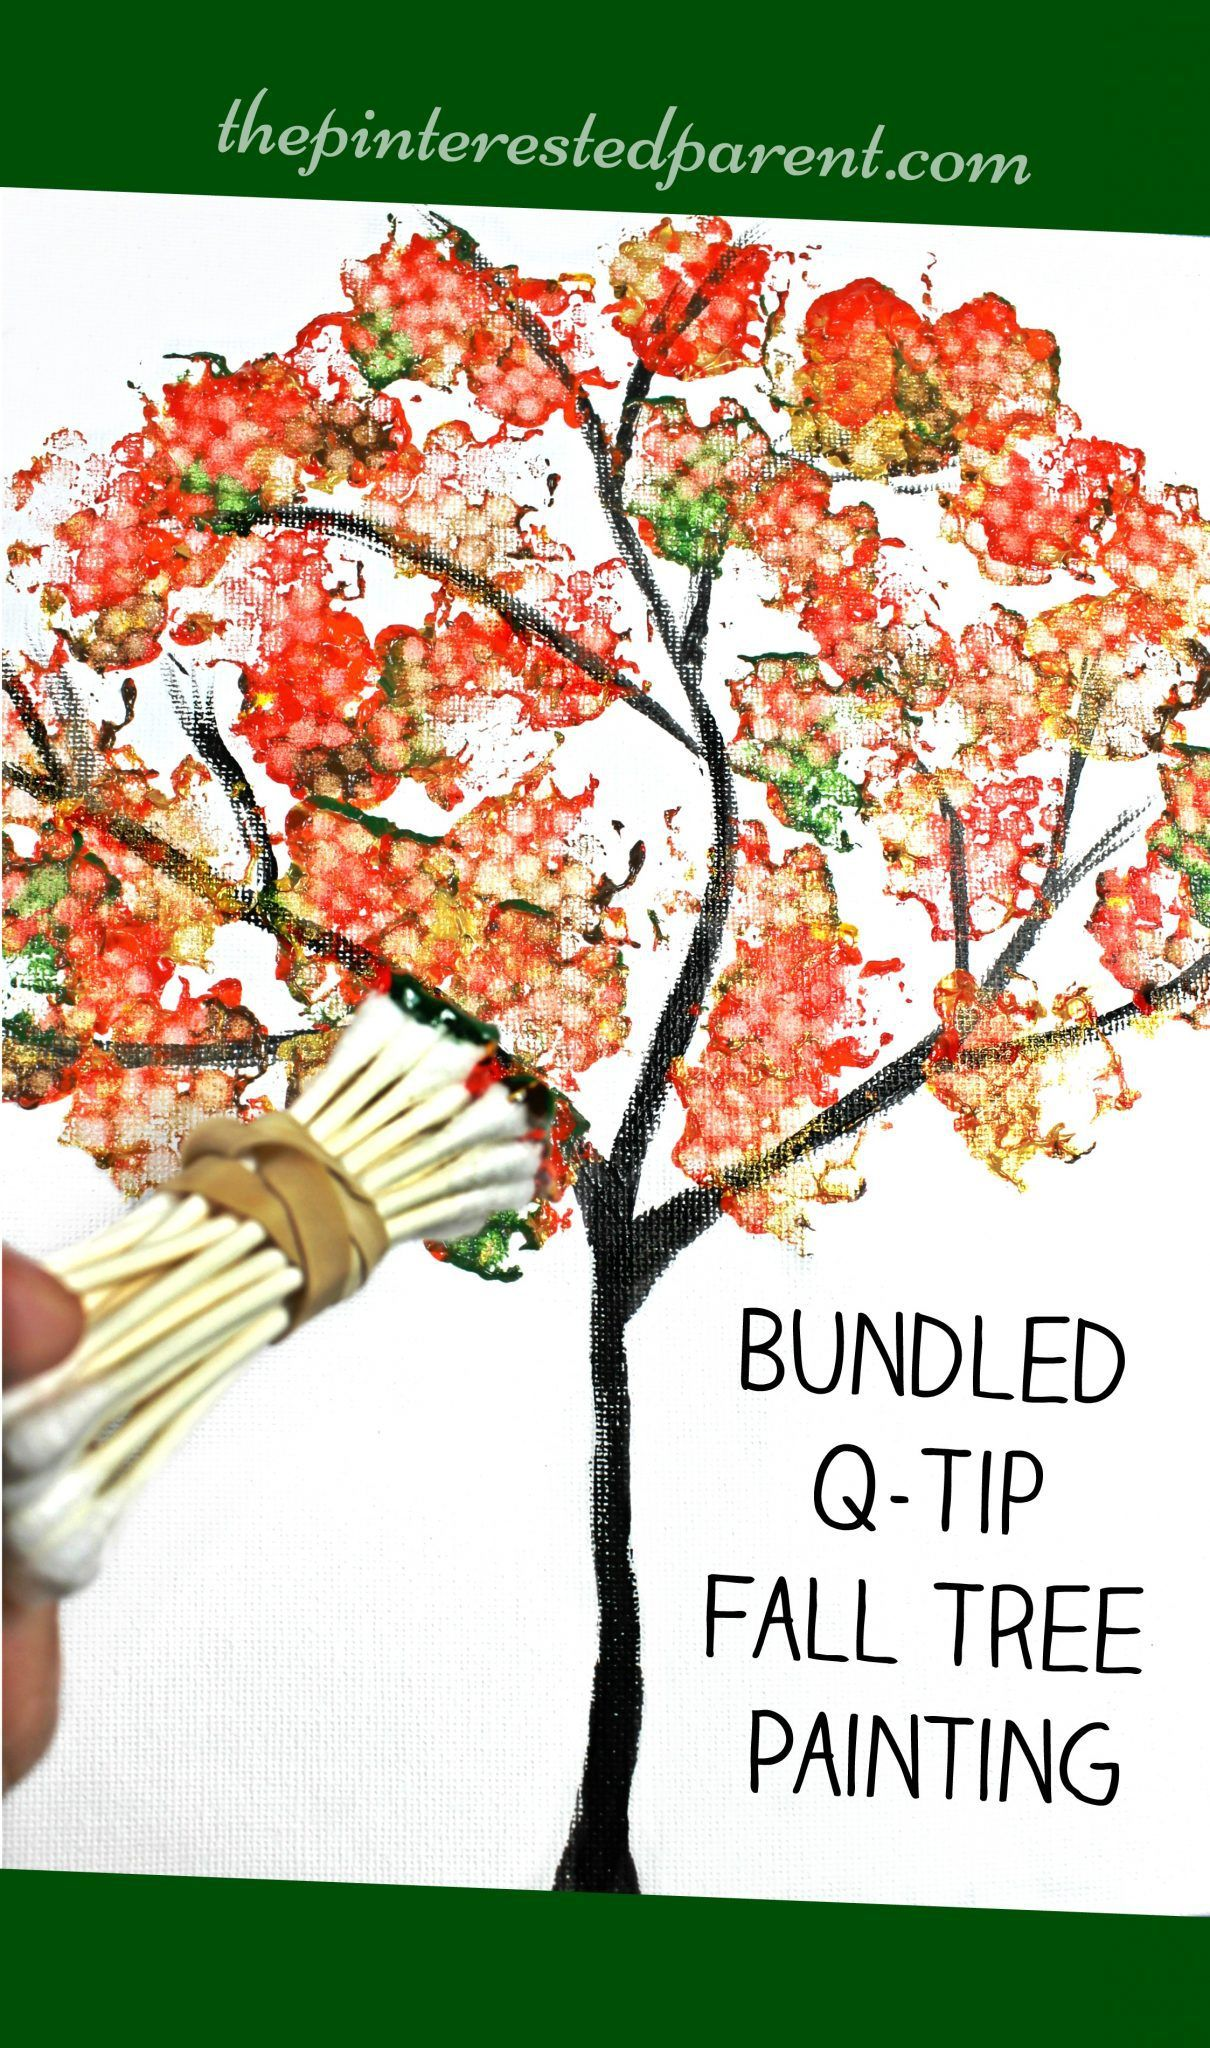 Fall tree painted with bundled qtips autumn arts u craft projects